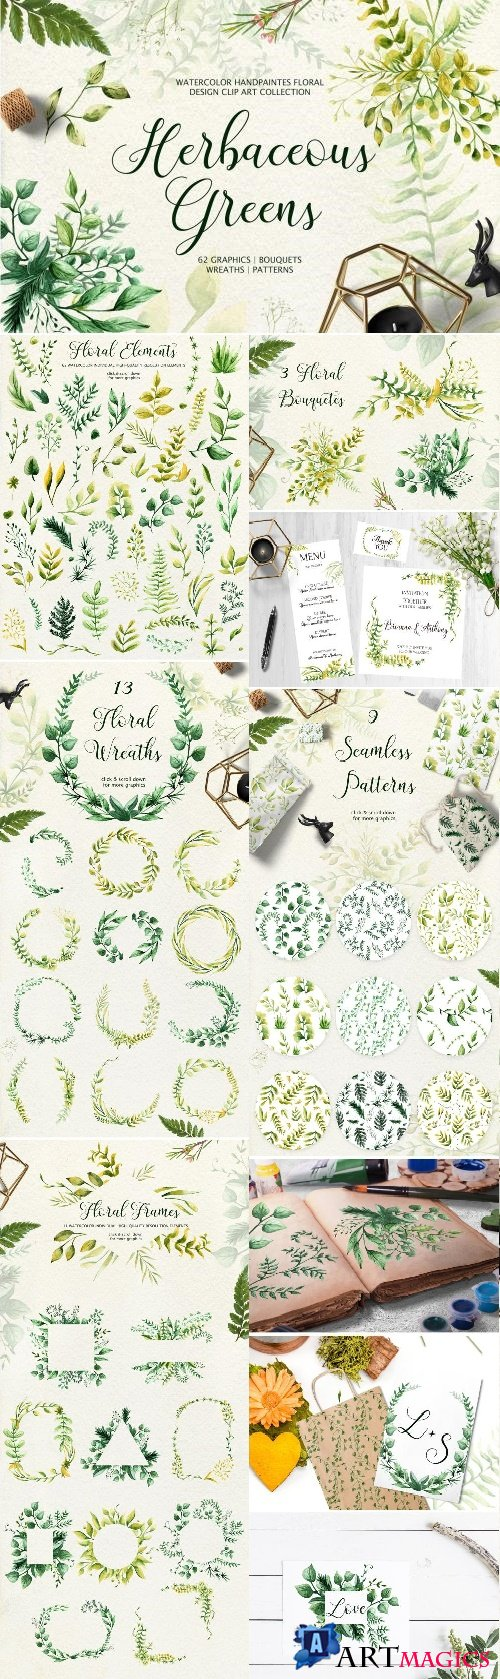 Herbaceous Greens-watercolor set - 2533494